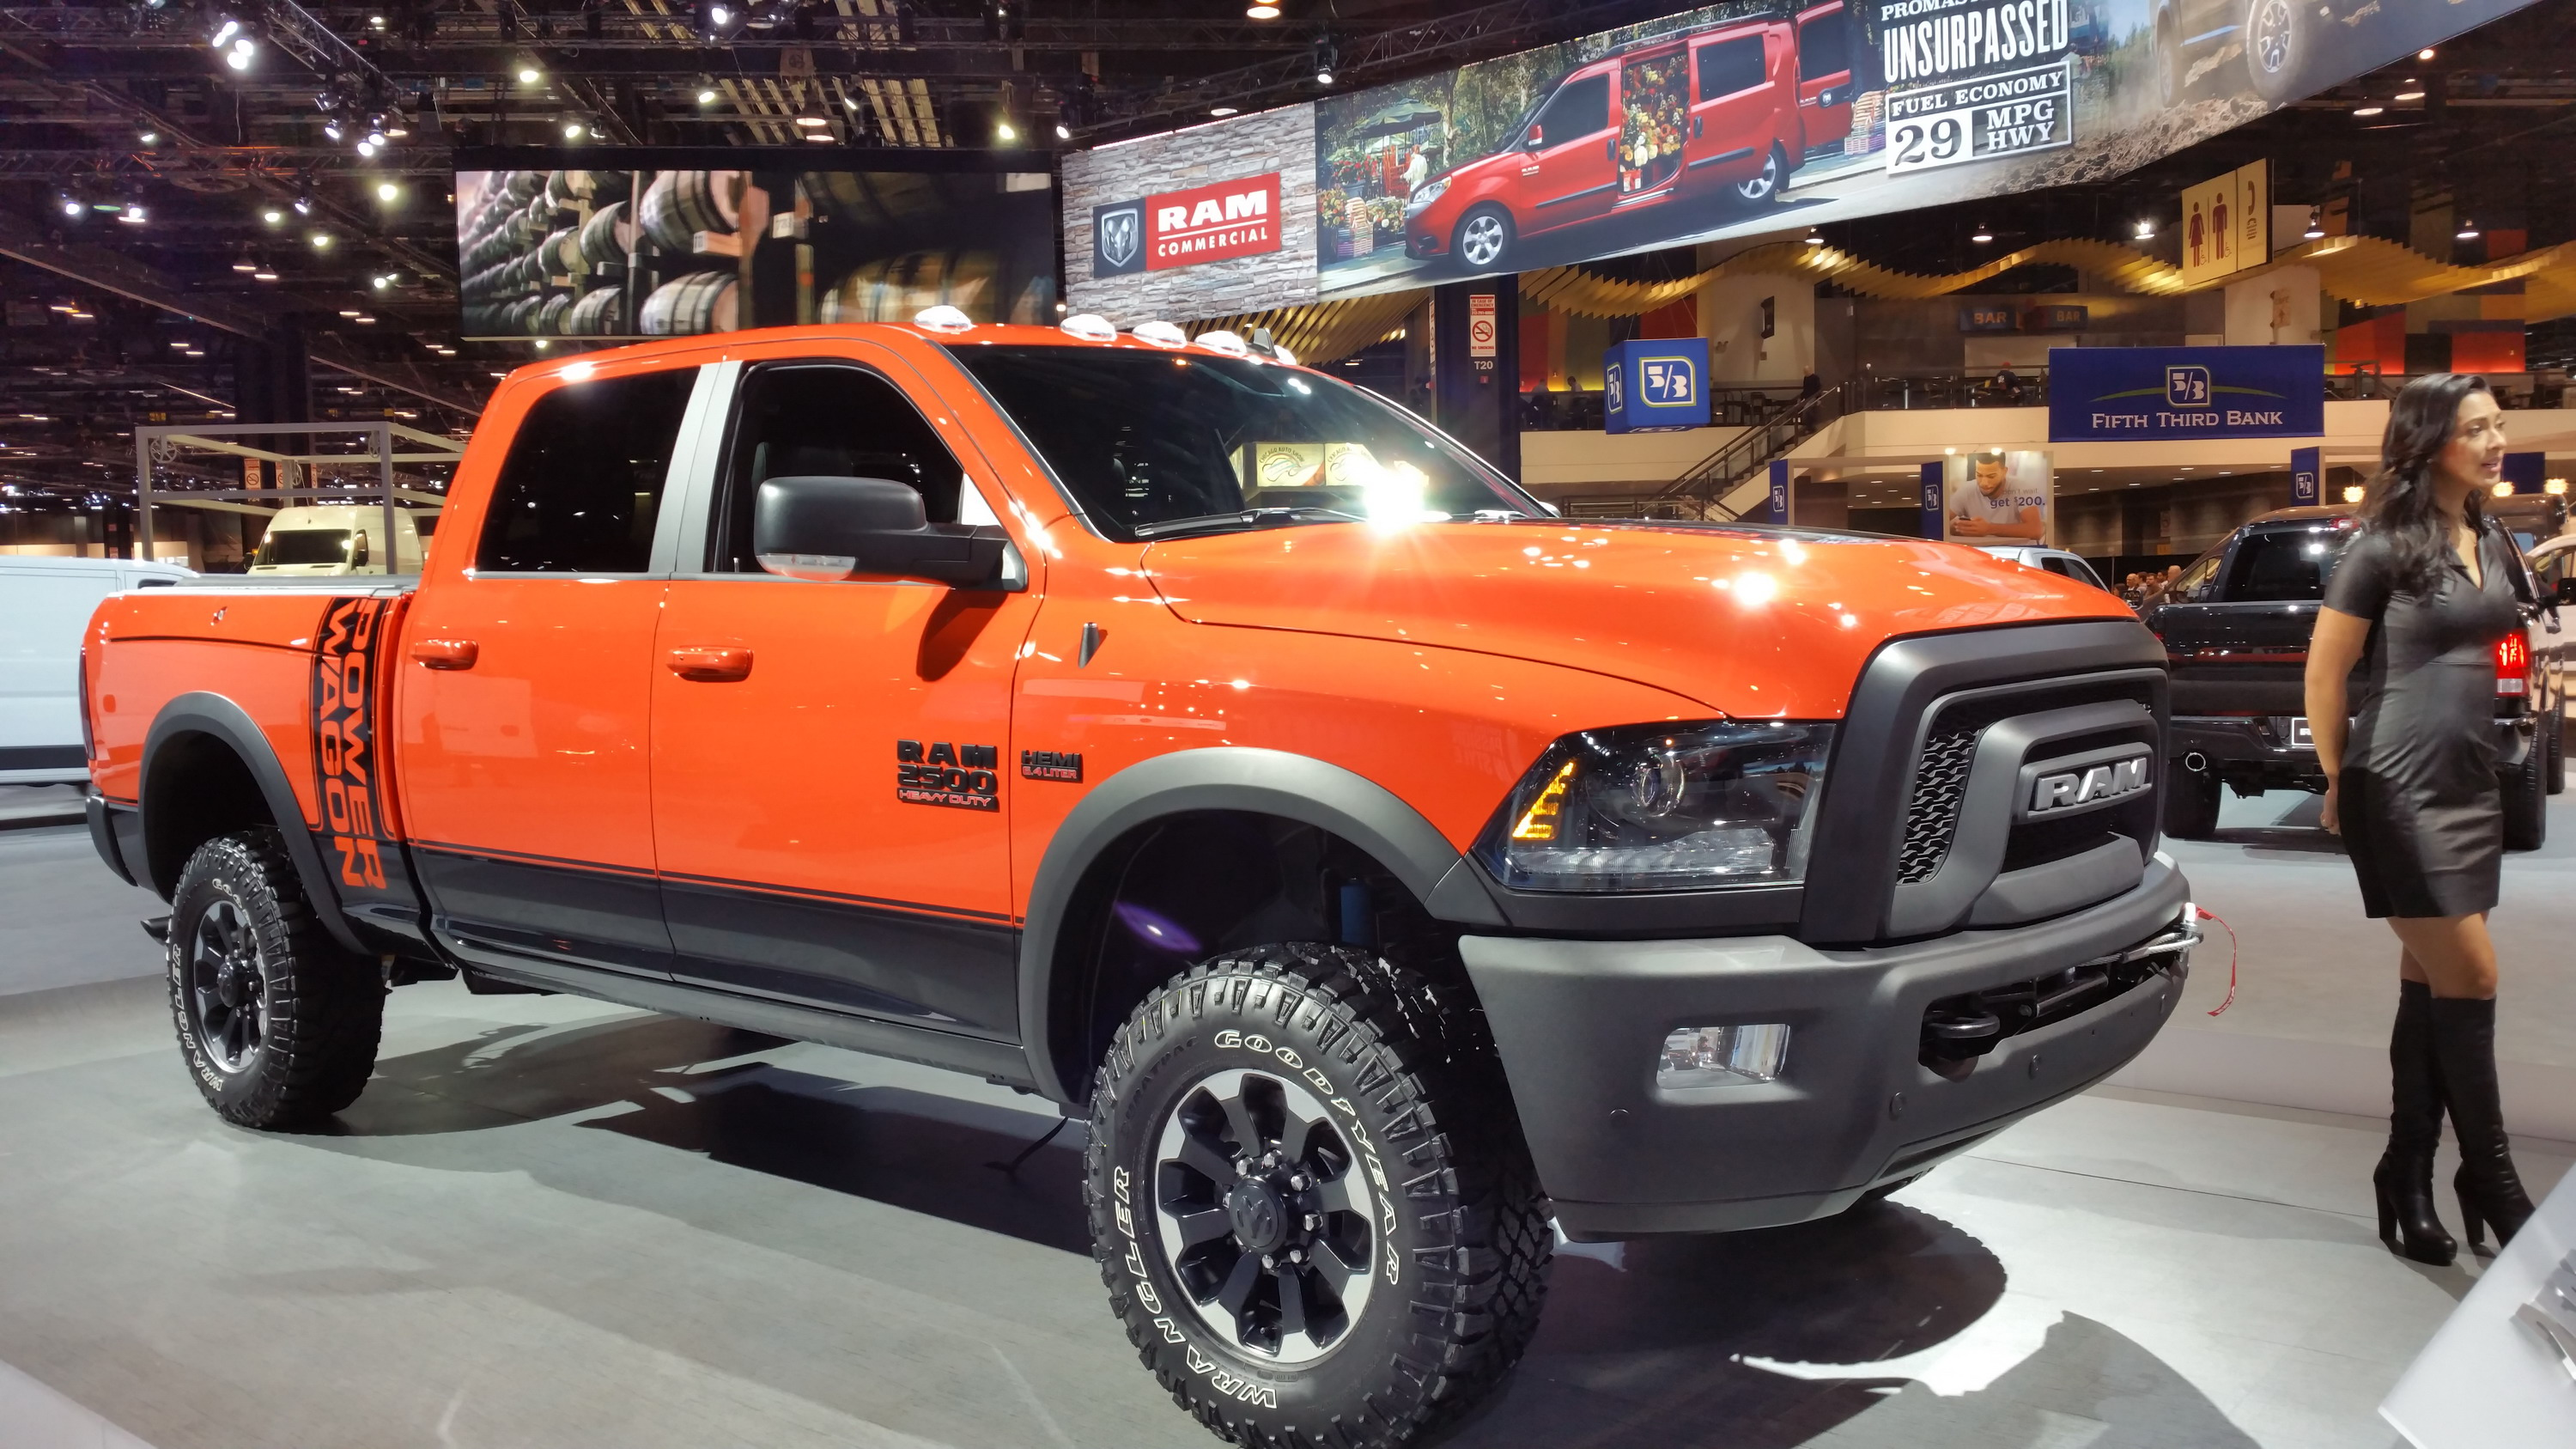 2017 ram power wagon review gallery top speed. Black Bedroom Furniture Sets. Home Design Ideas